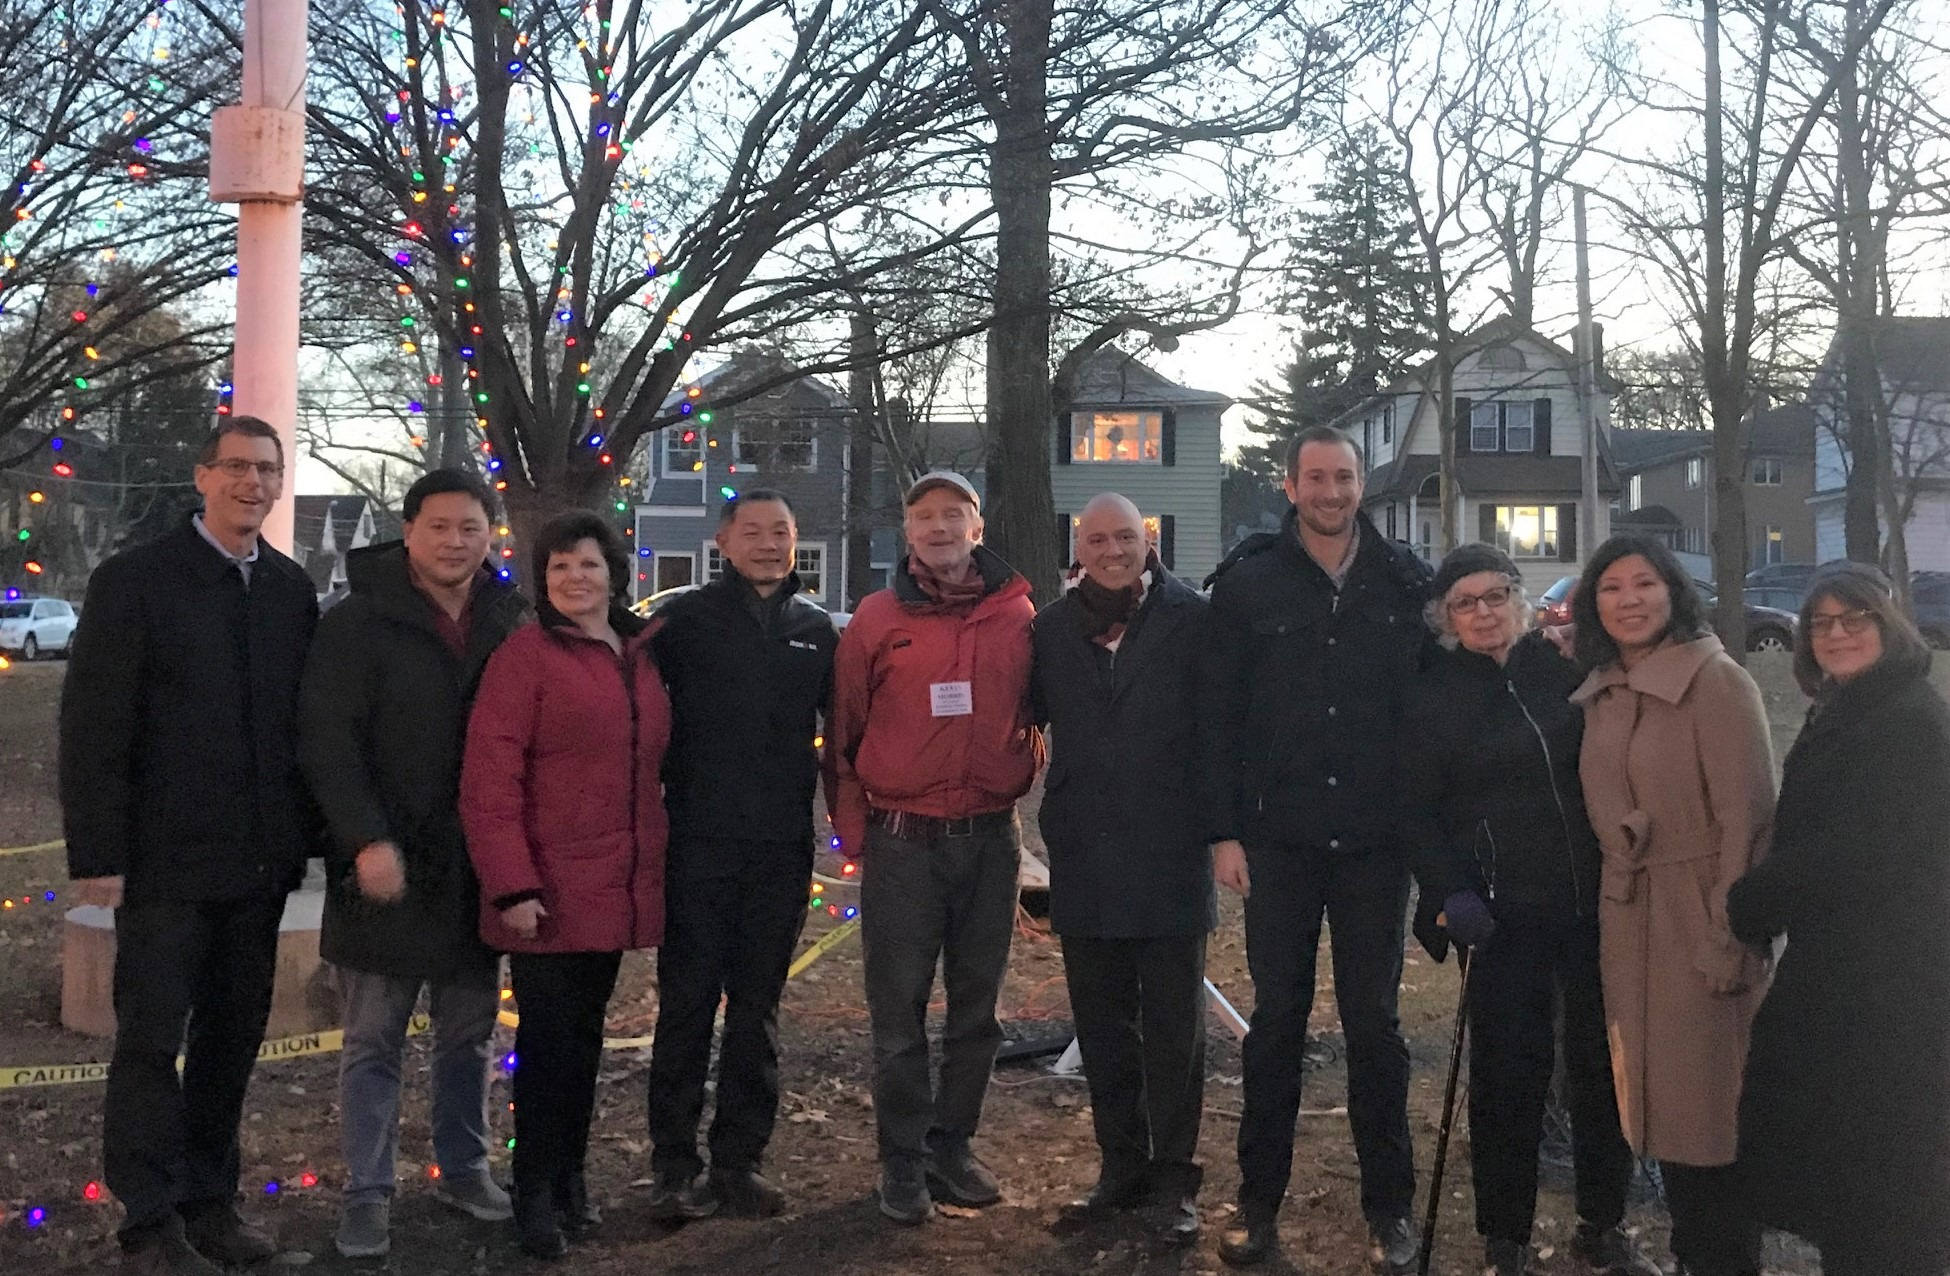 On December 22, 2019, Assemblyman Braunstein attended the Bowne Park Civic Association and Broadway-Flushing Homeowner's Association Annual Holiday Tree/Menorah Lighting in Bowne Park.